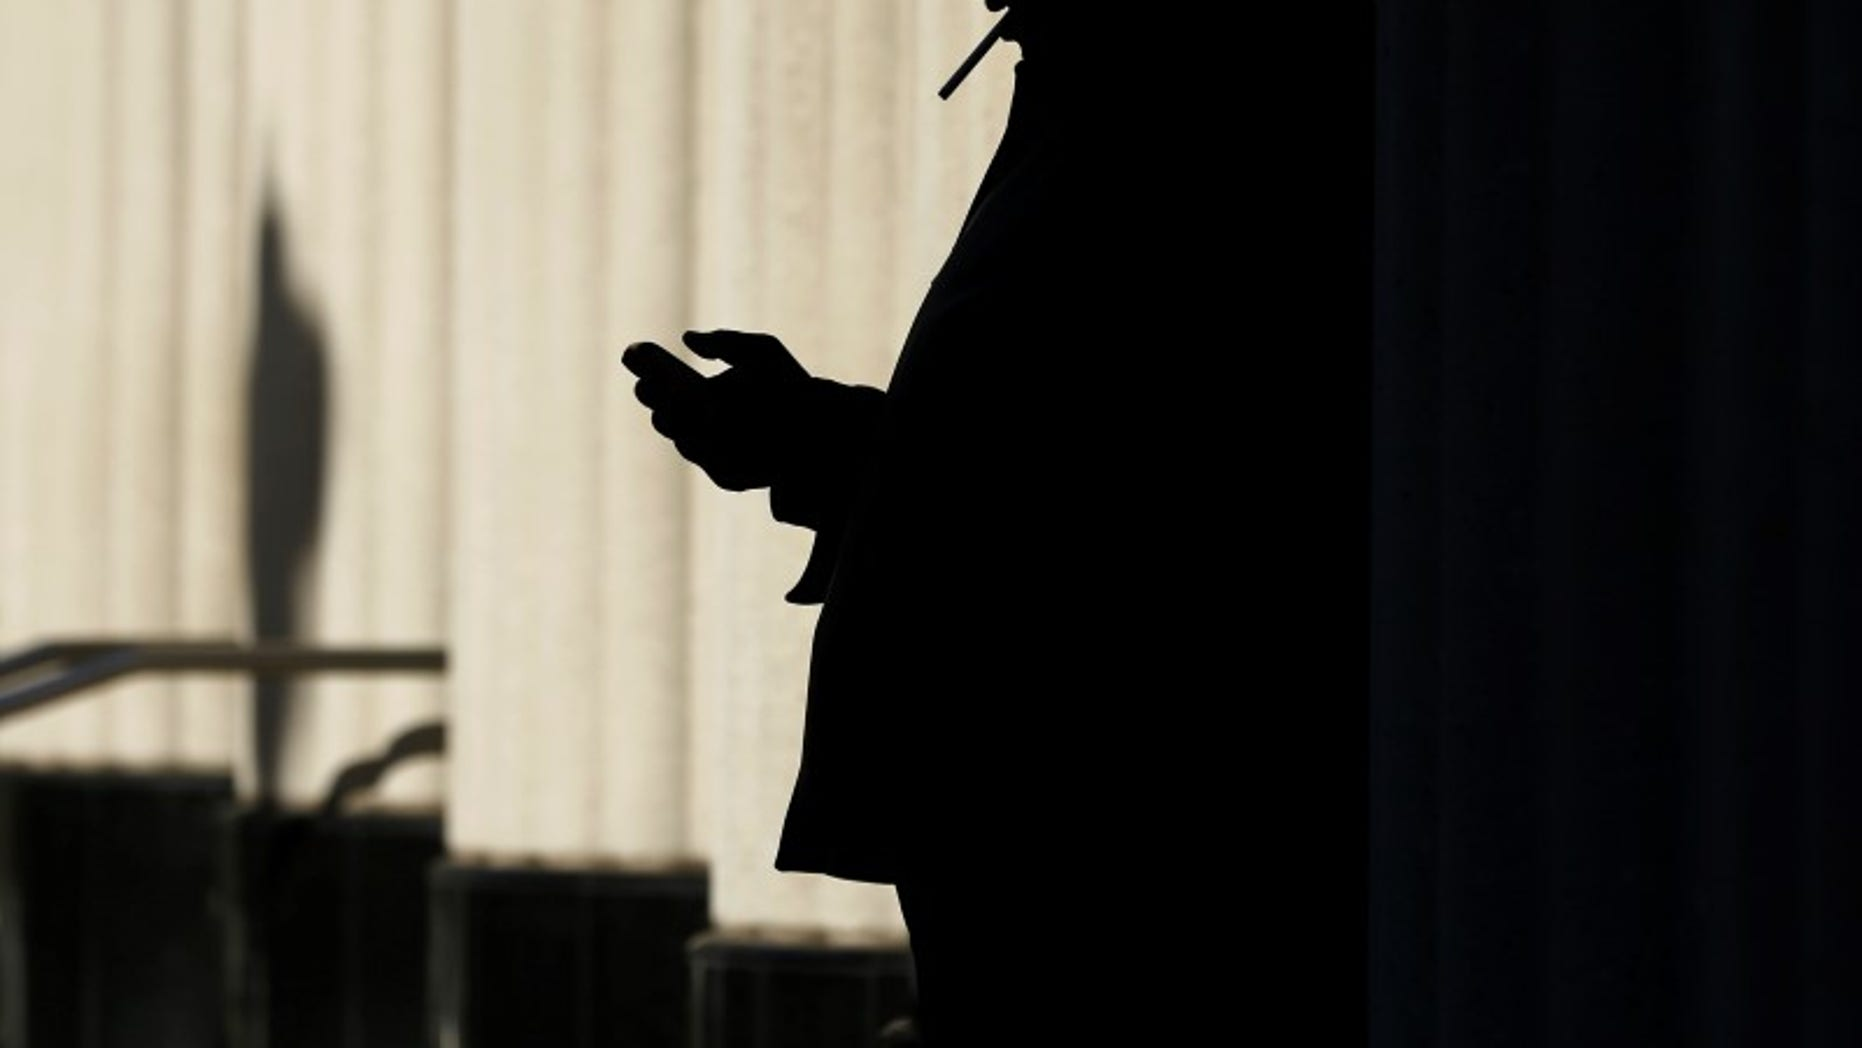 A man sends text messages on his mobile phone as he smokes a cigarette outside the court building in San Diego